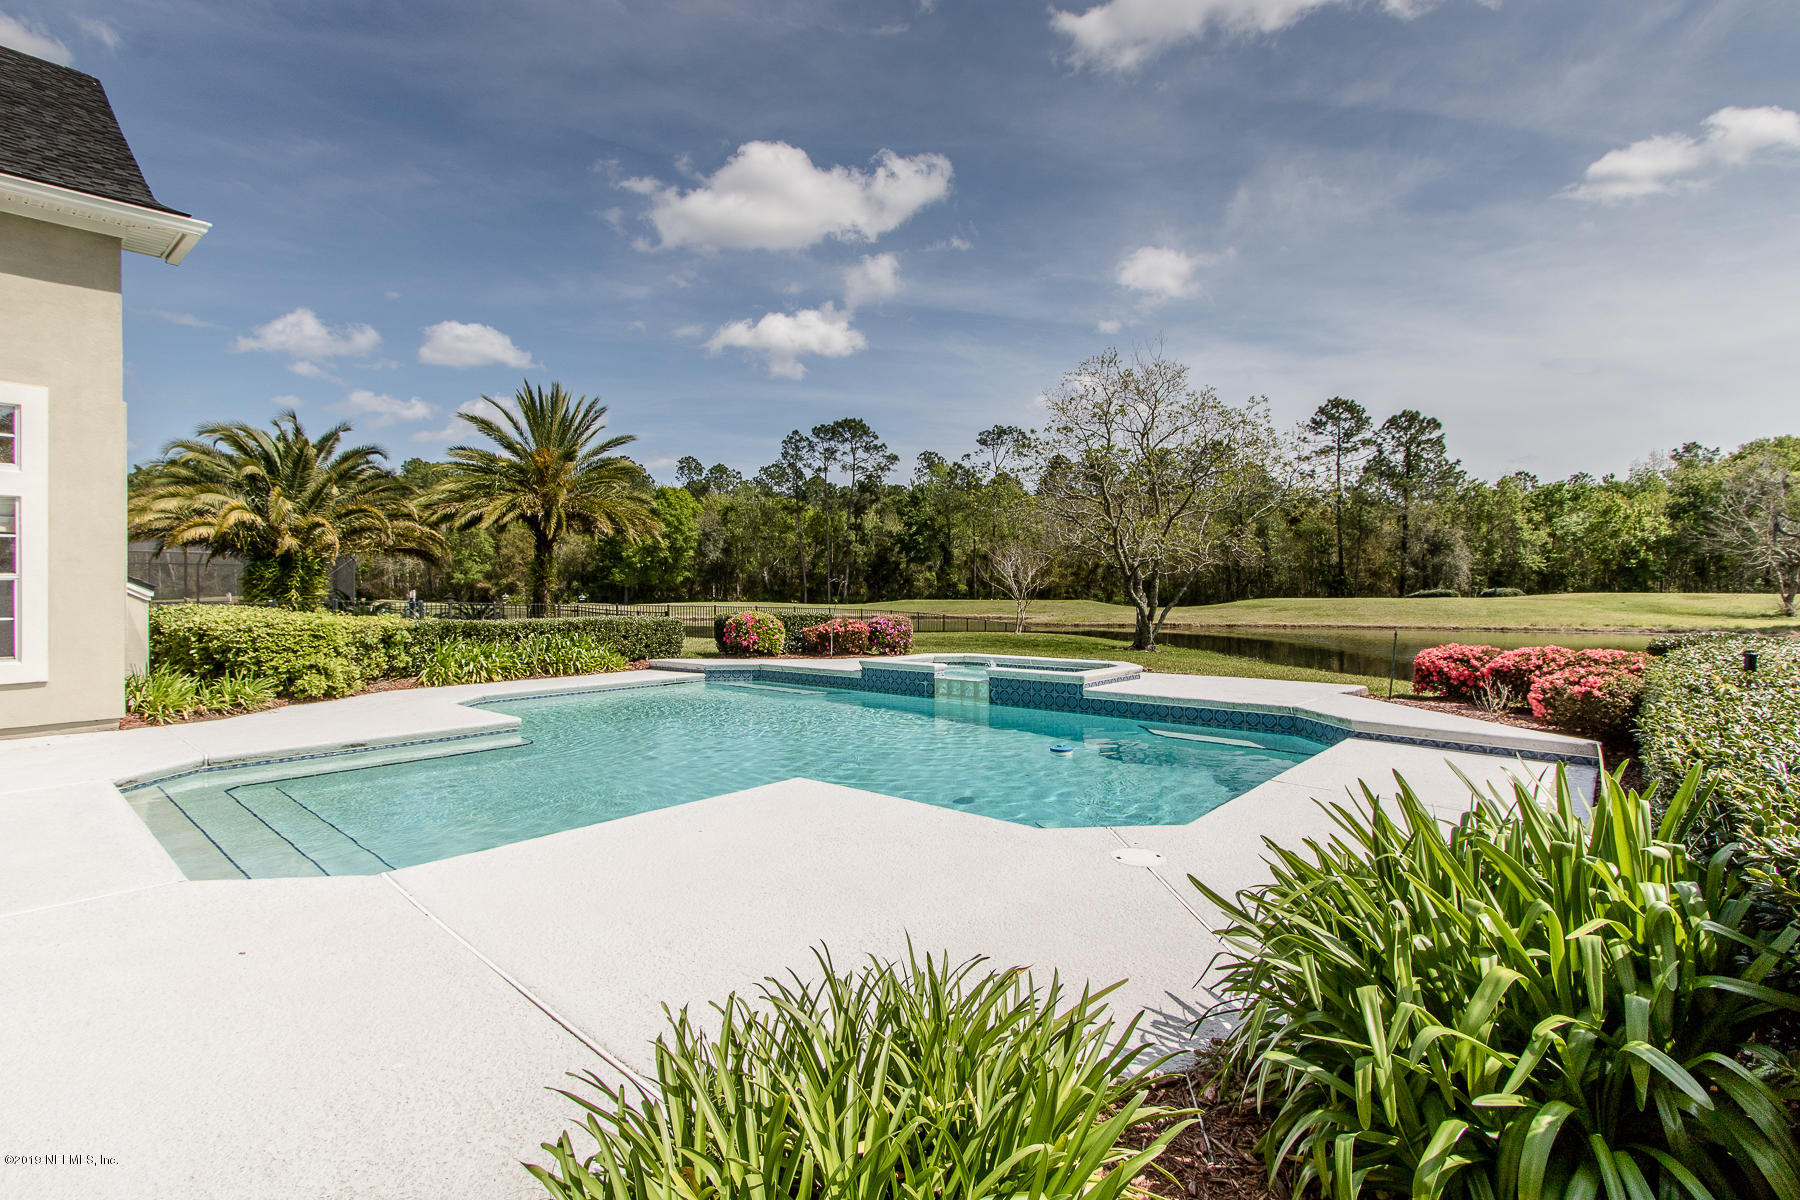 2896 COUNTRY CLUB, ORANGE PARK, FLORIDA 32073, 5 Bedrooms Bedrooms, ,4 BathroomsBathrooms,Residential - single family,For sale,COUNTRY CLUB,984172